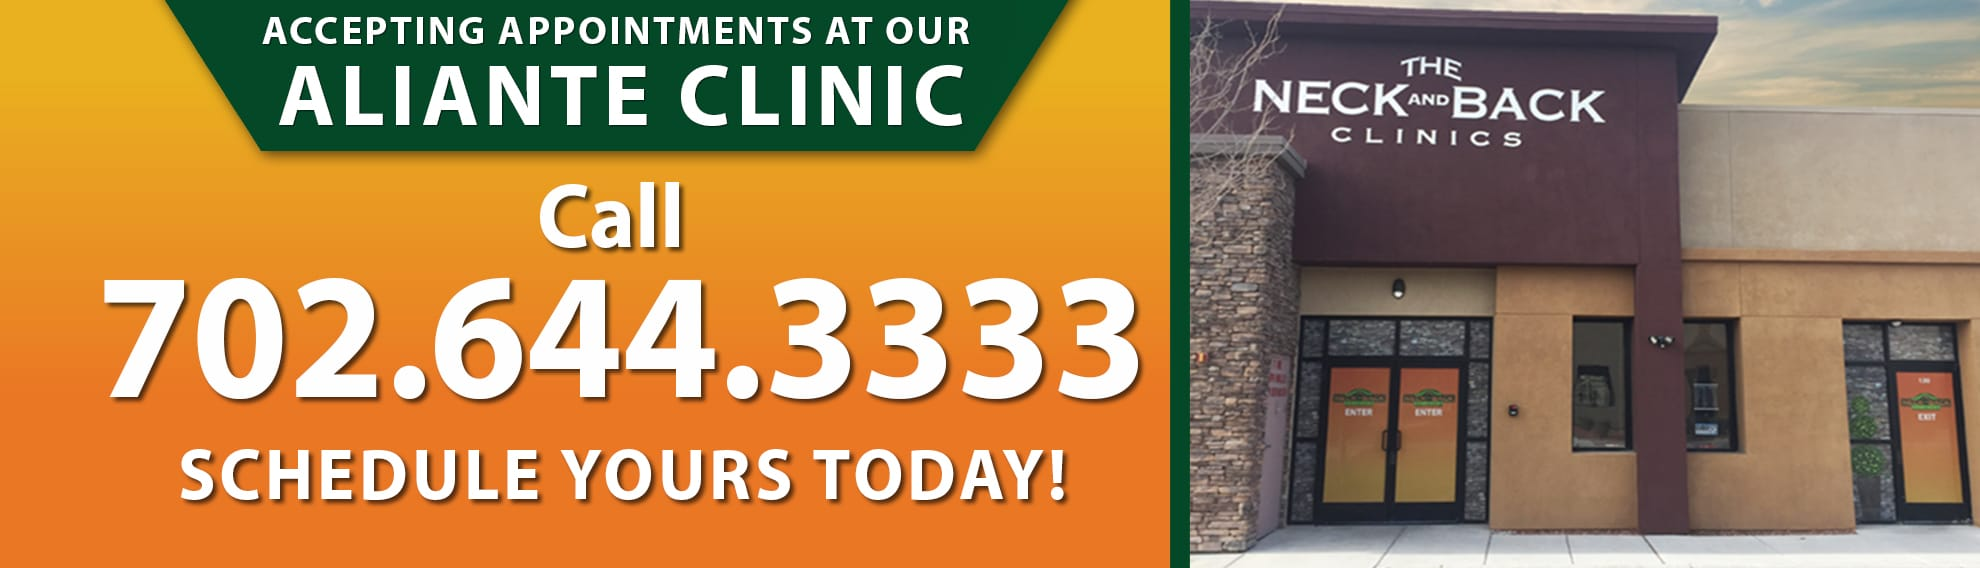 Appointments at aliante clinic